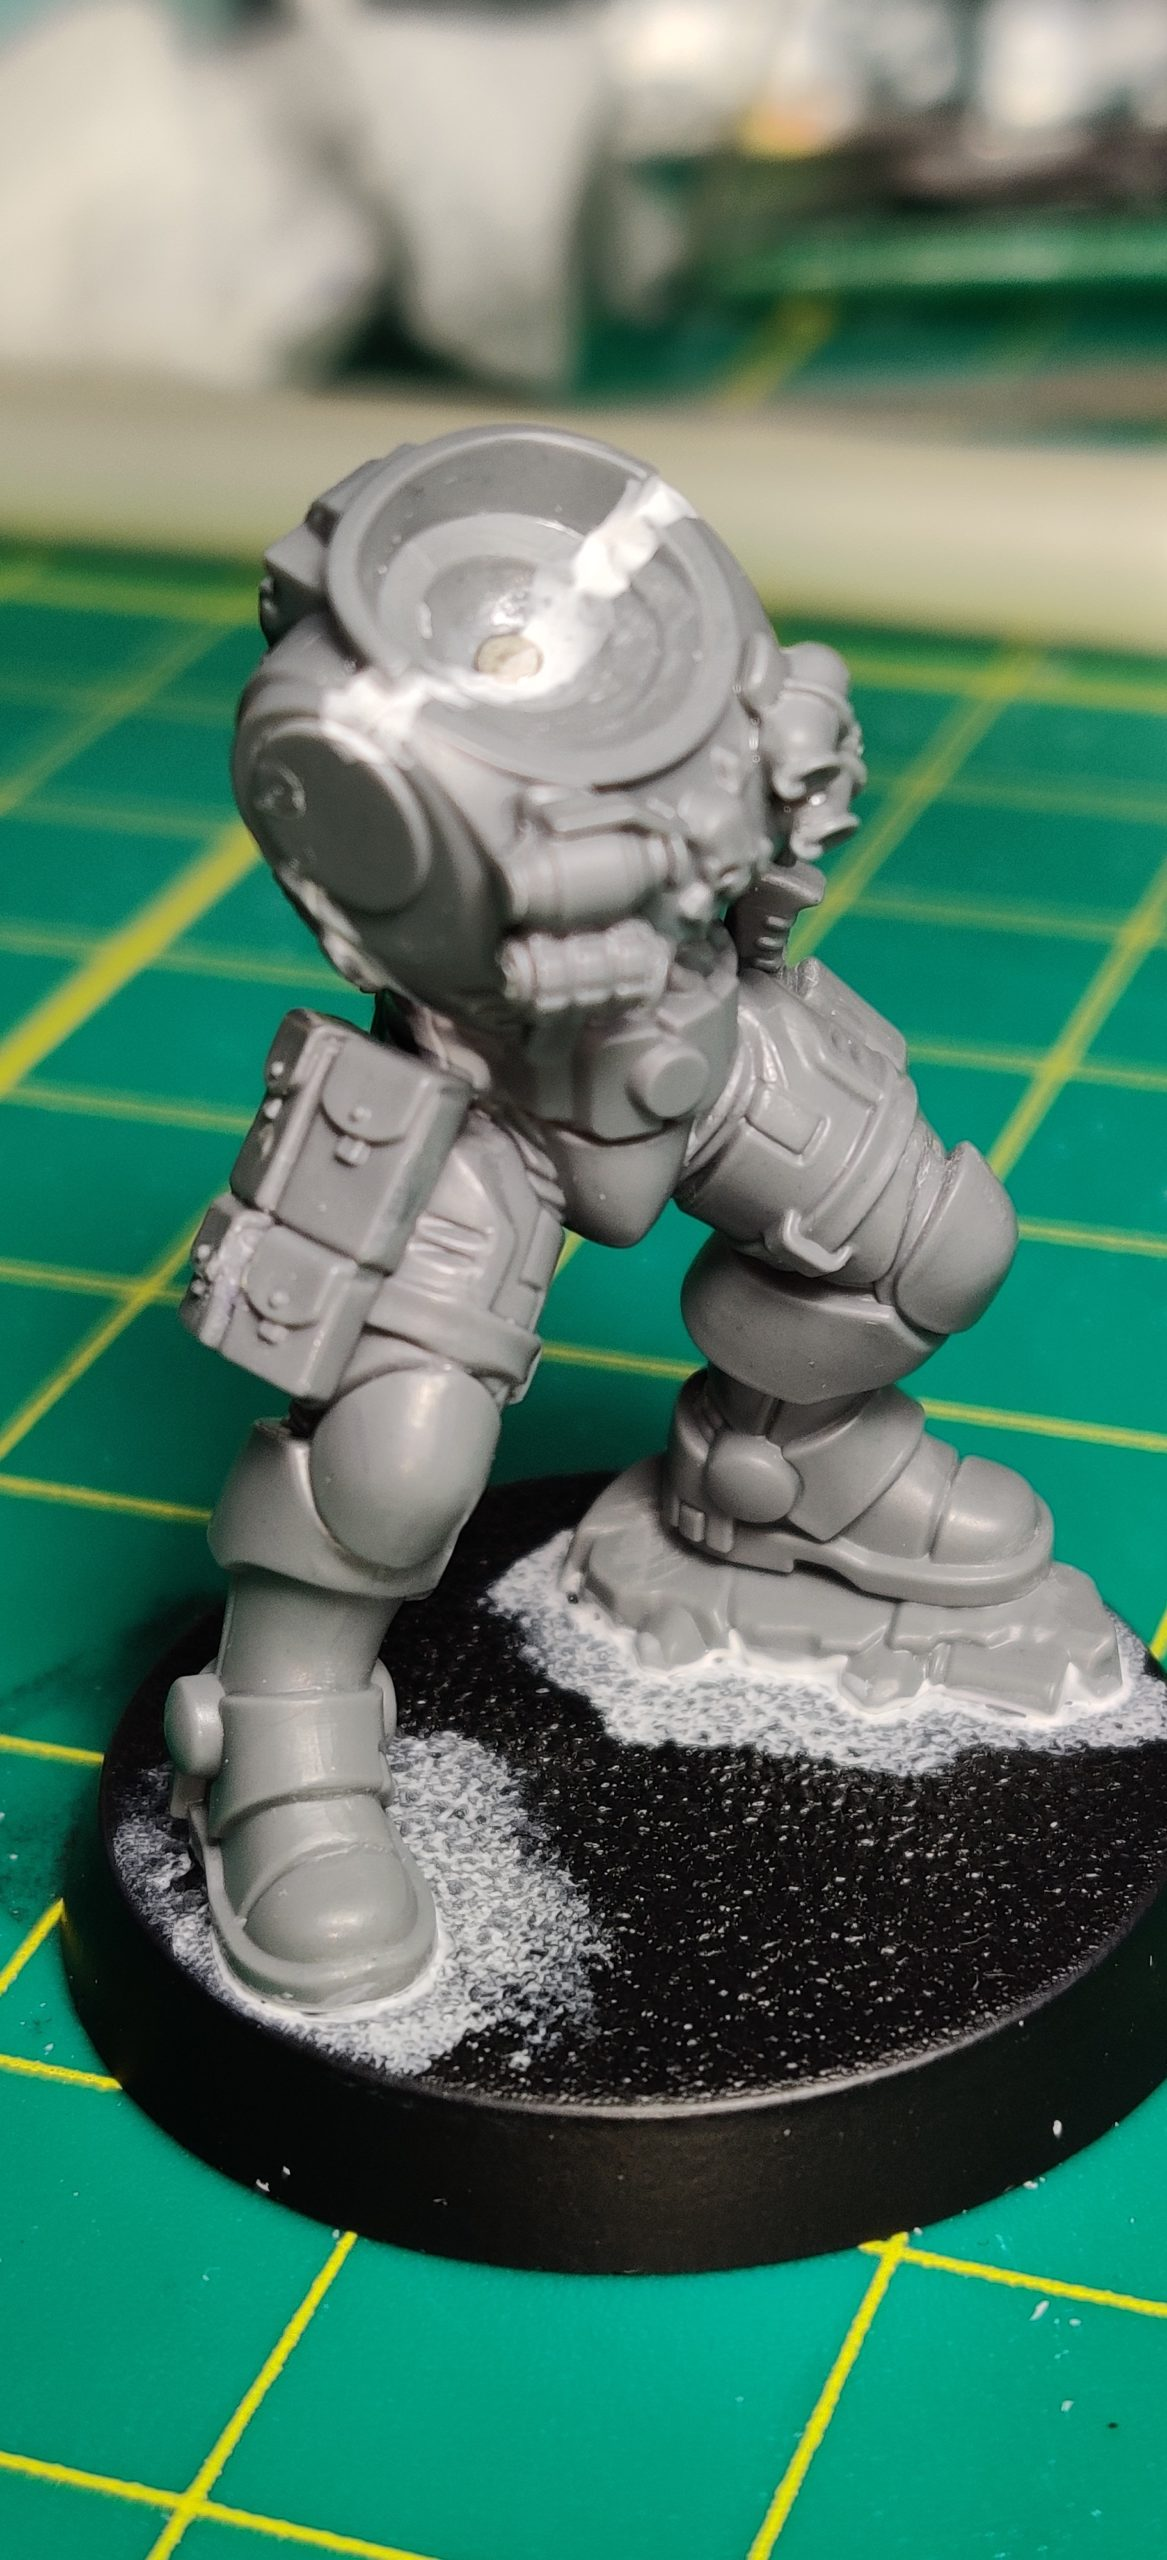 Primaris Infiltrator with thigh magnets and magnetized ammo pouches with pouches attached.